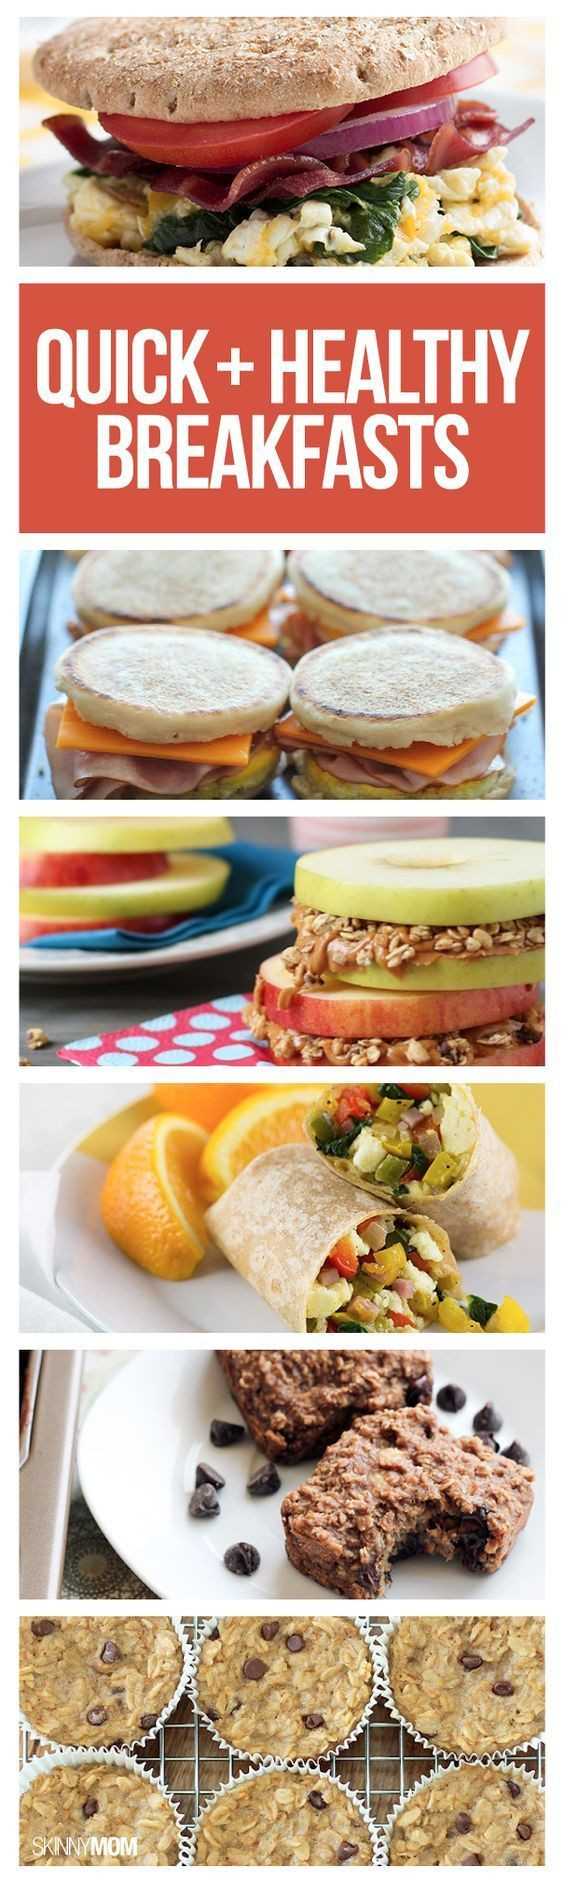 Quick Healthy Breakfast  17 Best images about Healthy Meals on Pinterest